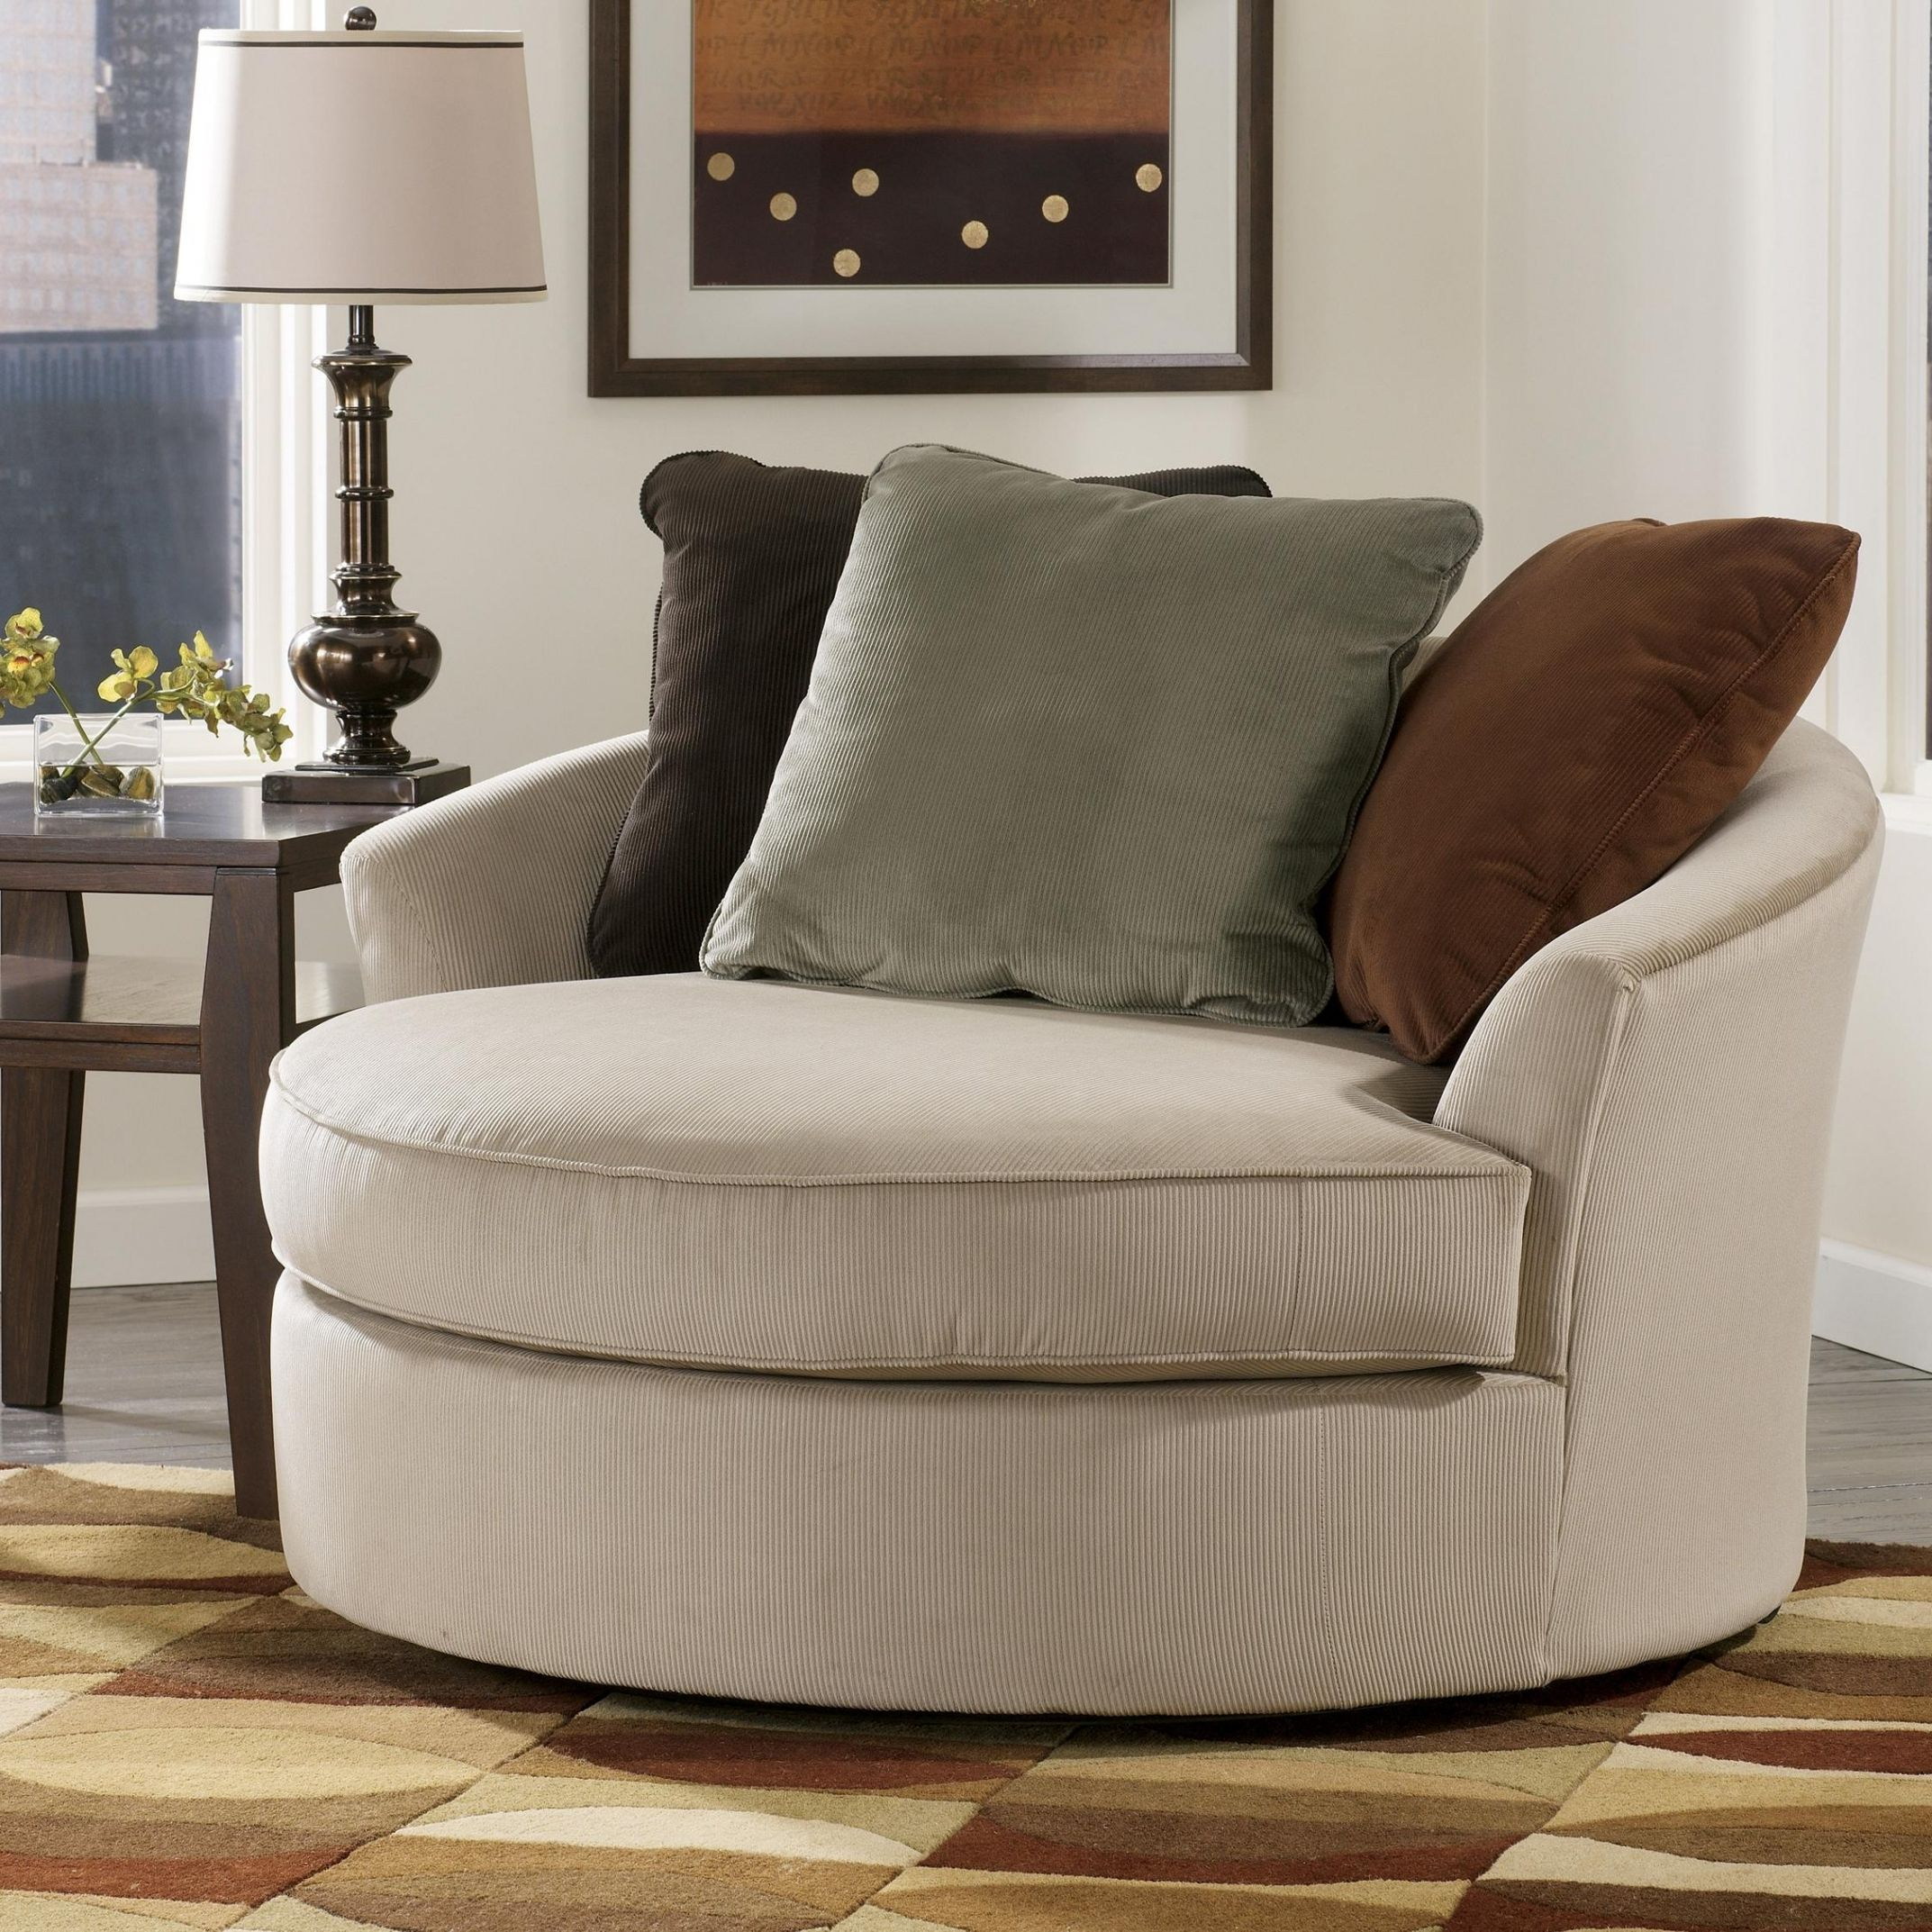 25 amazing cool and dramatic lounge chairs collections